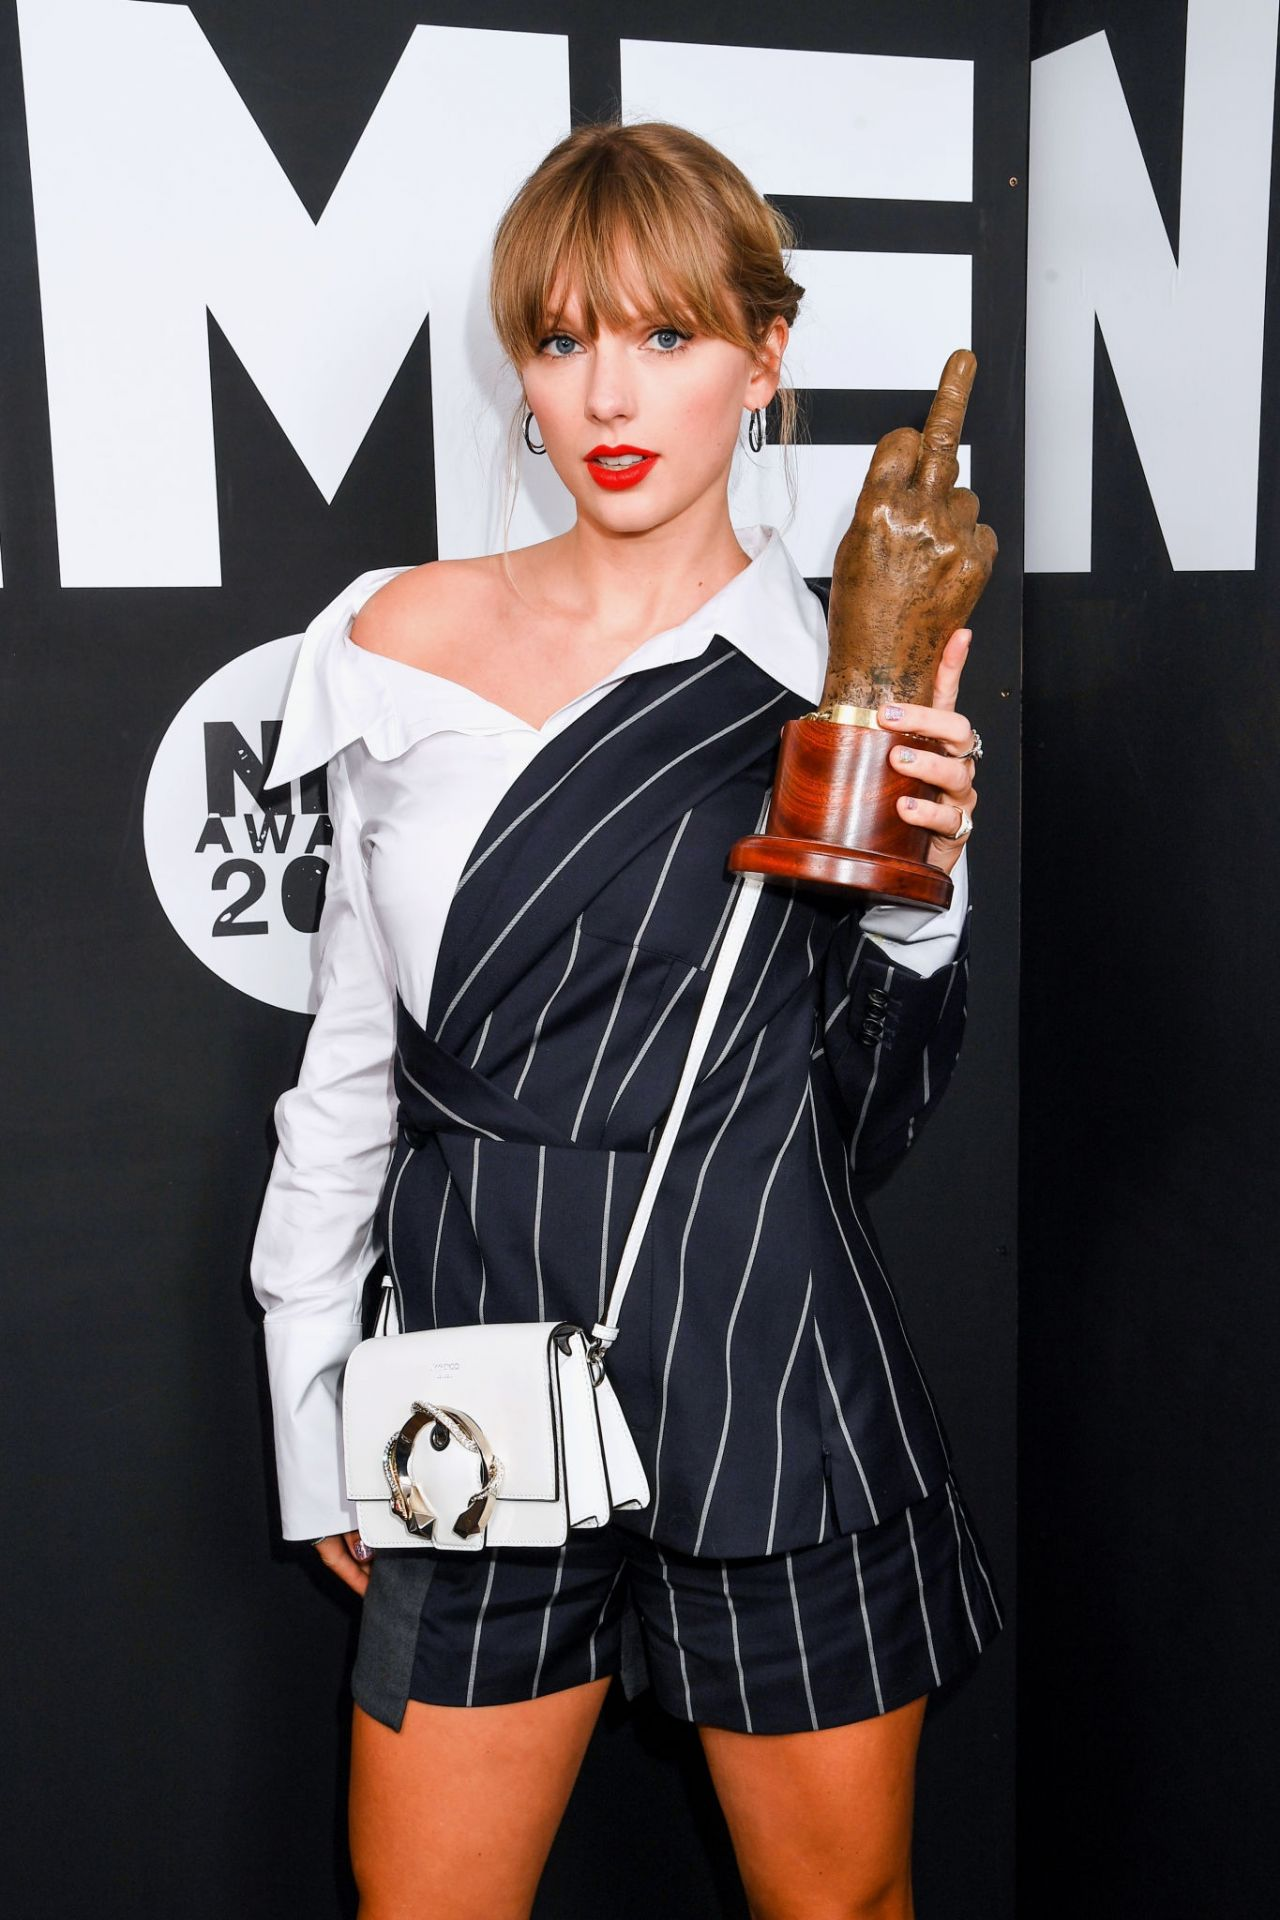 Taylor Swift - NME Awards 2020 (more photos) • CelebMafia